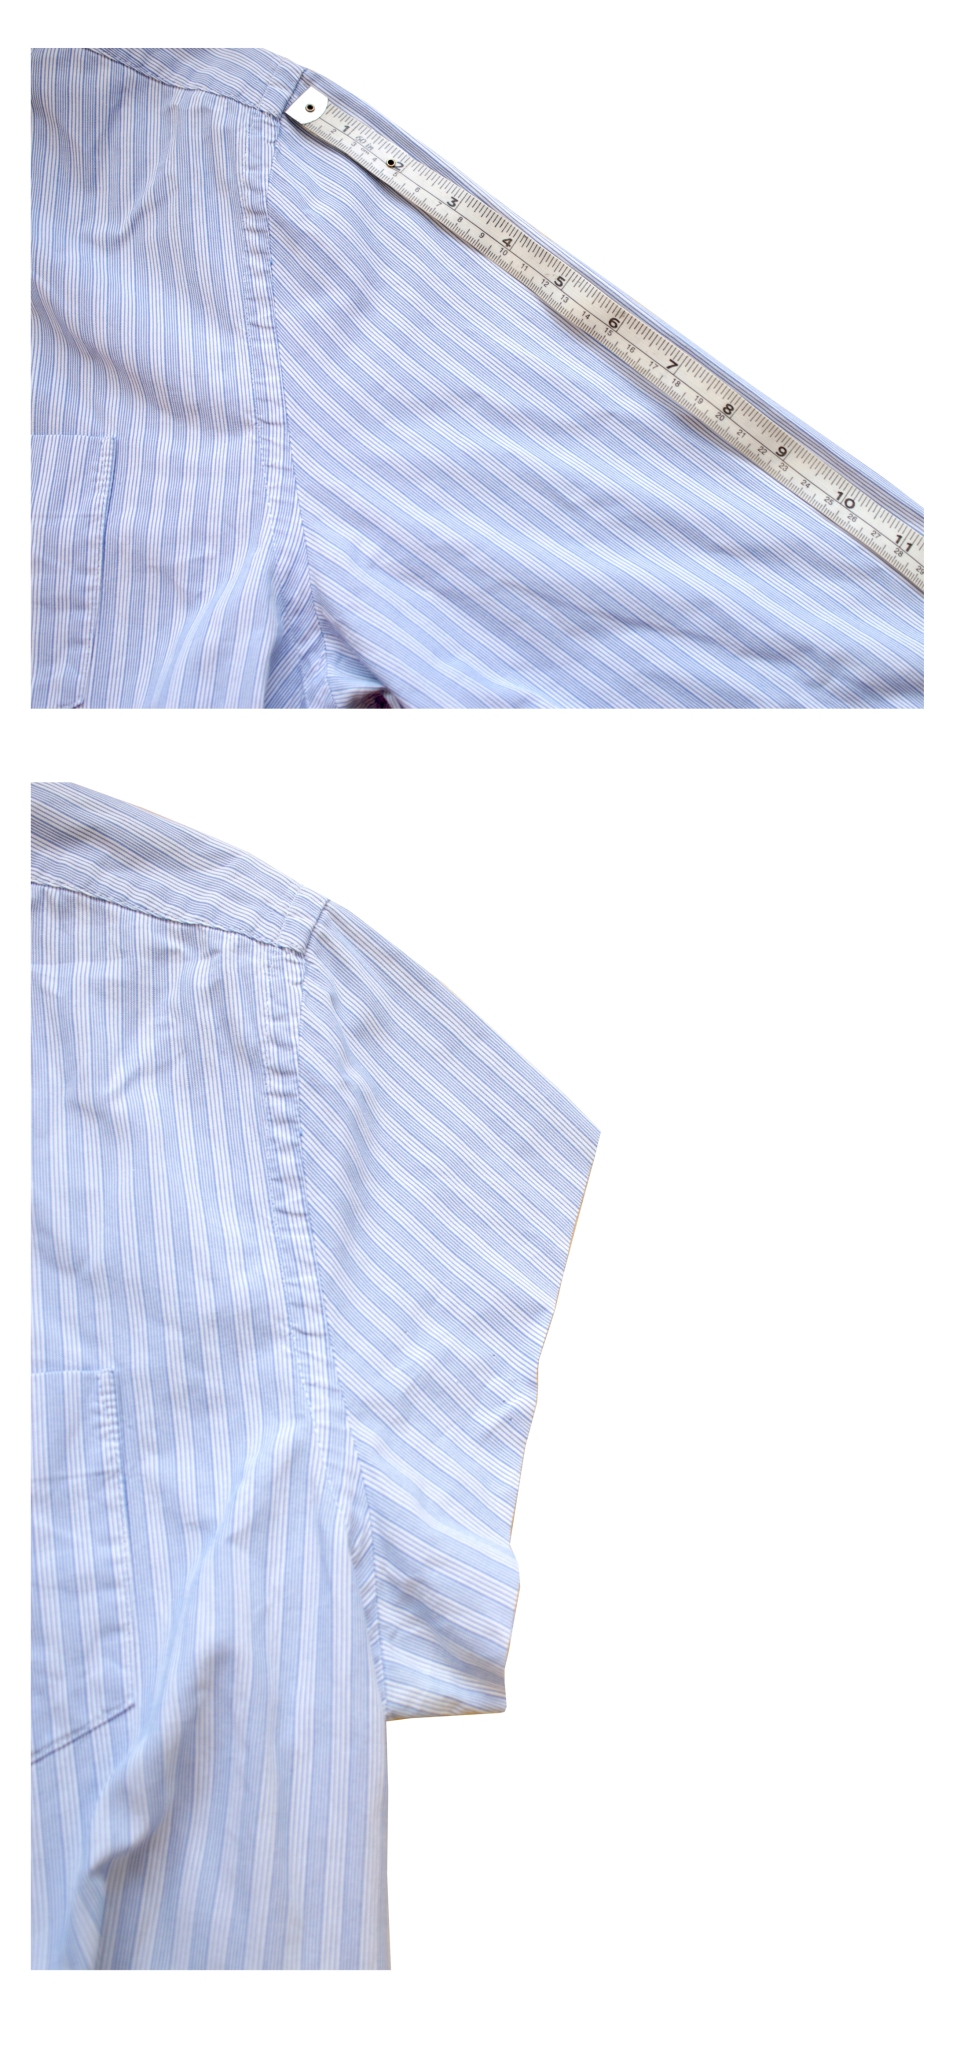 Up-cycling shirt measure and cut sleeve